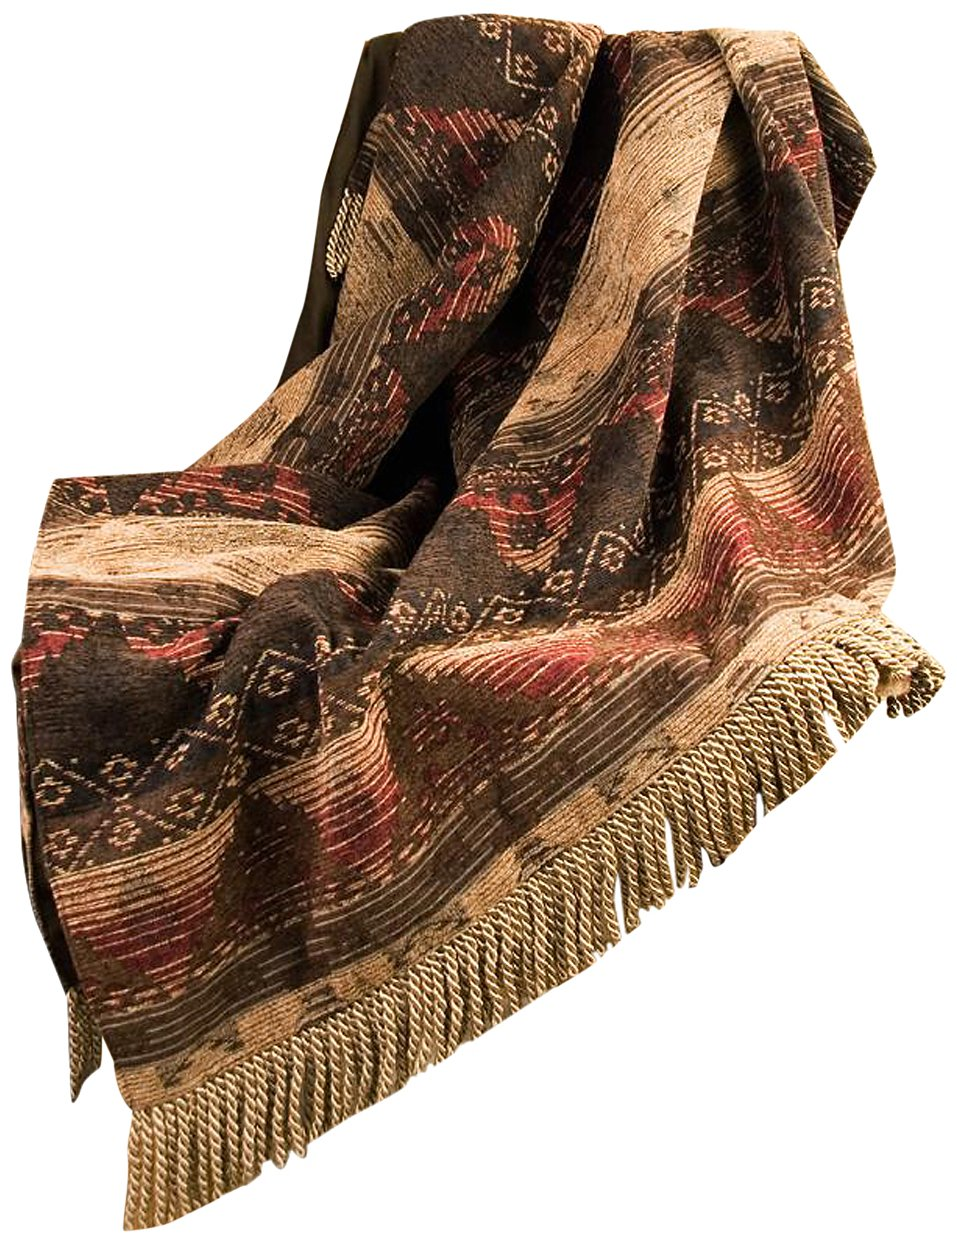 HiEnd Accents Sierra Lodge Throw HomeMax Imports LG1830TH